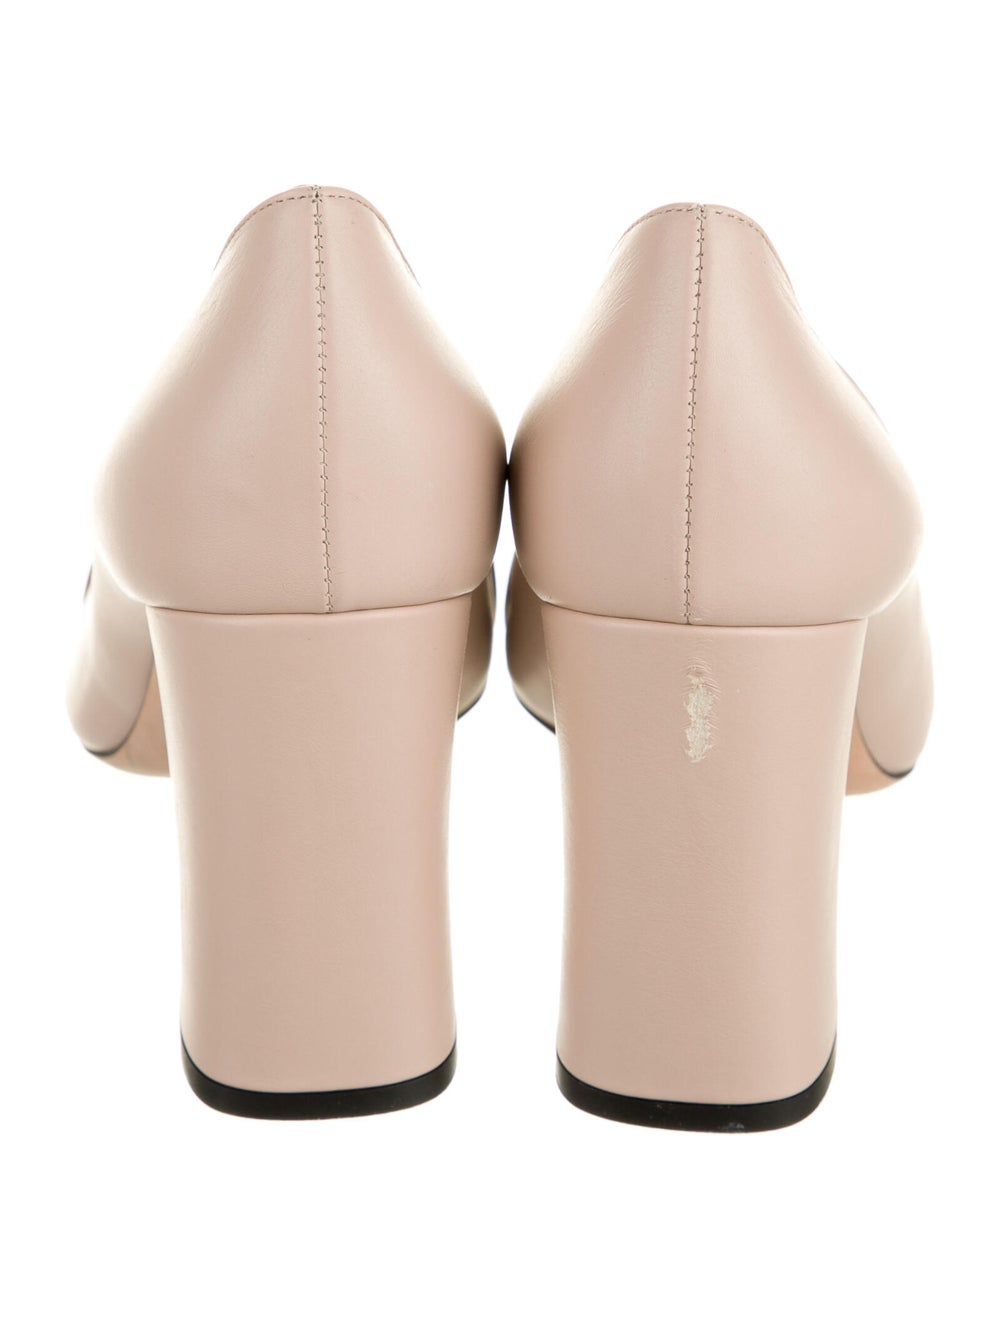 Bally Leather Pumps - image 4